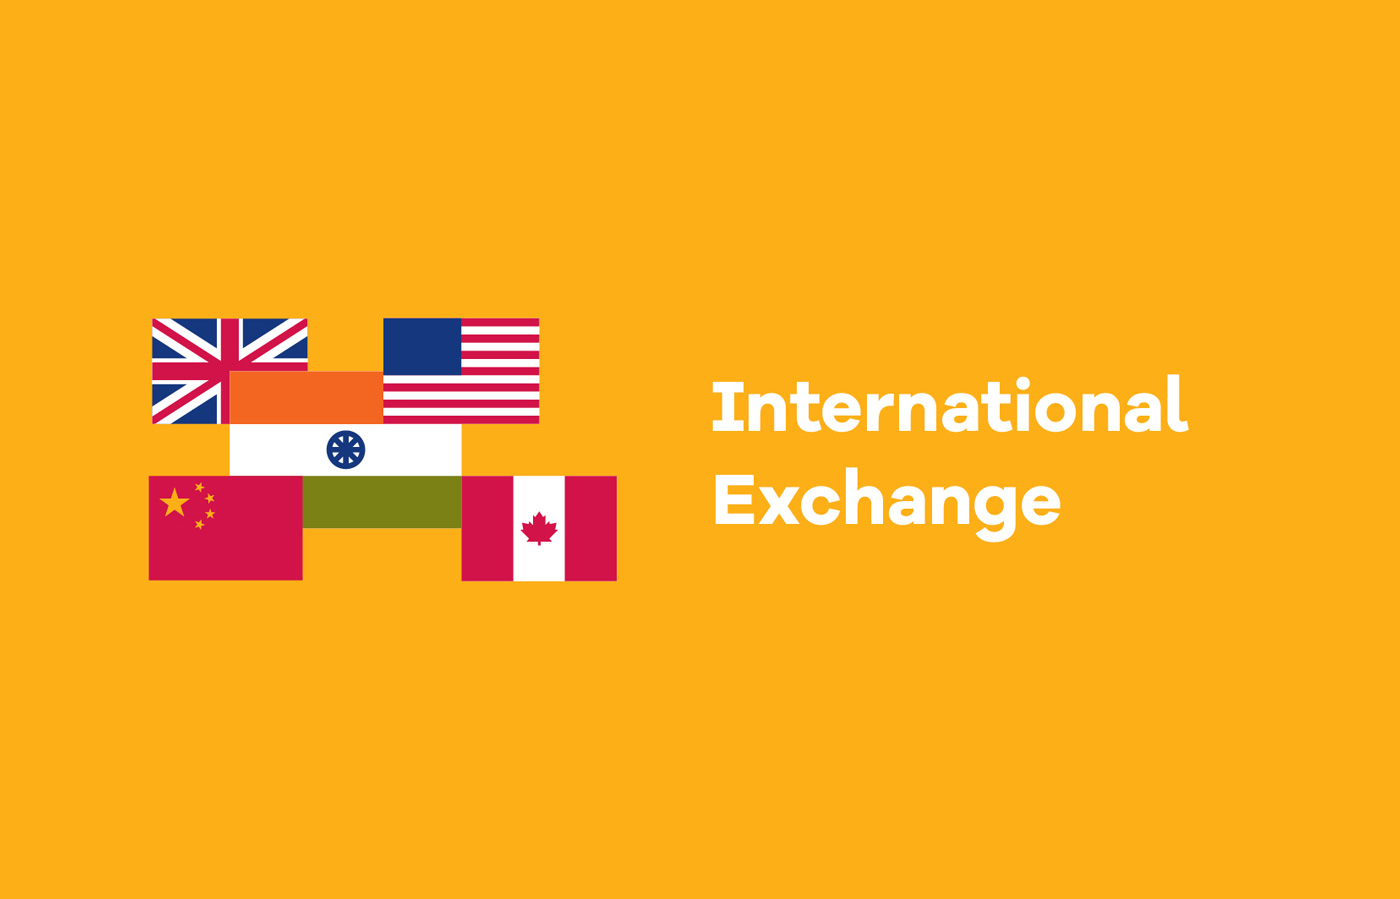 UL Undergrad iconography for international exchange